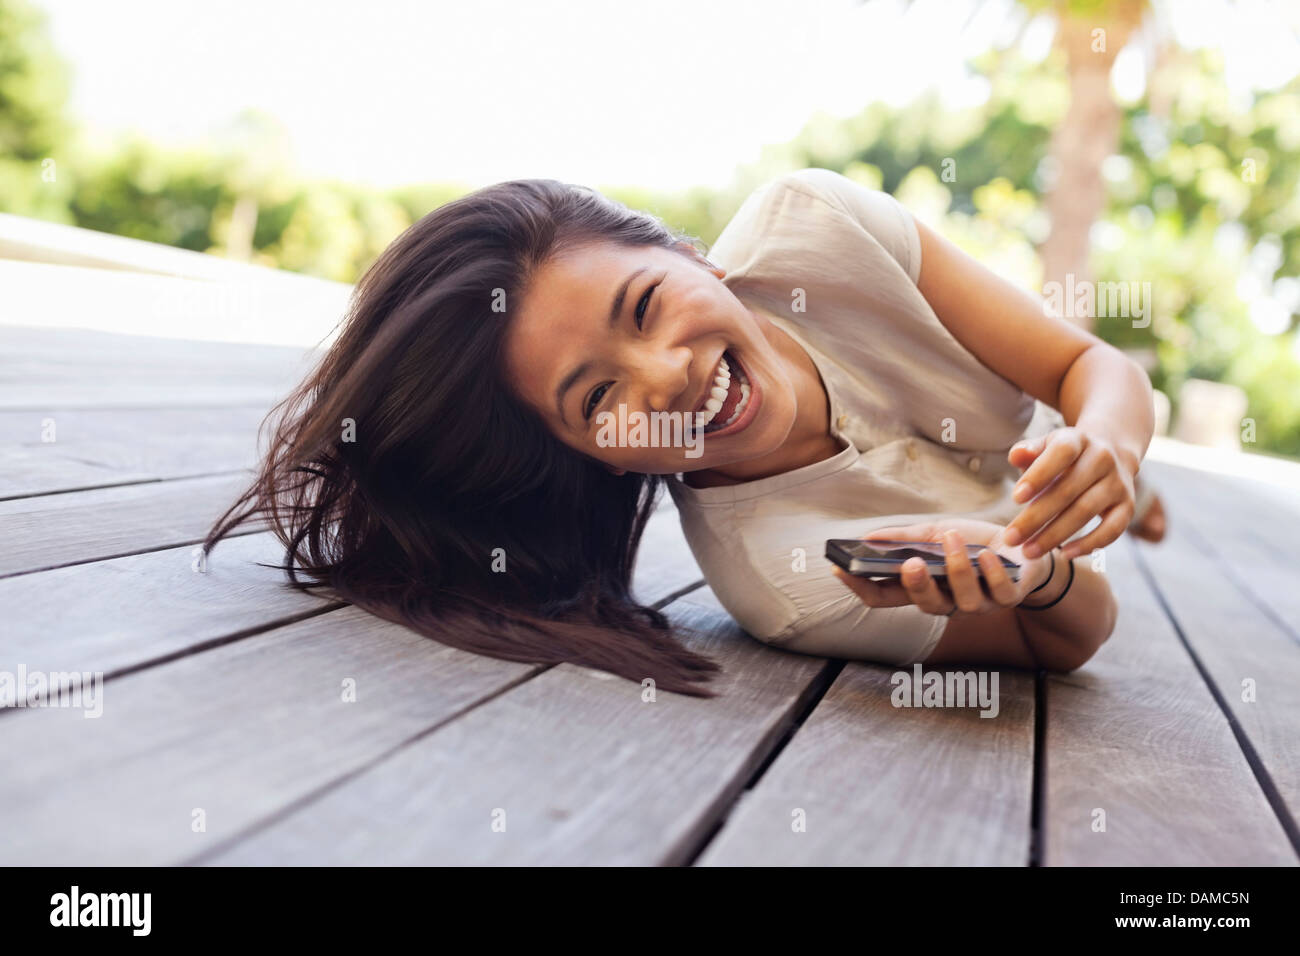 Woman using cell phone on wooden deck Stock Photo